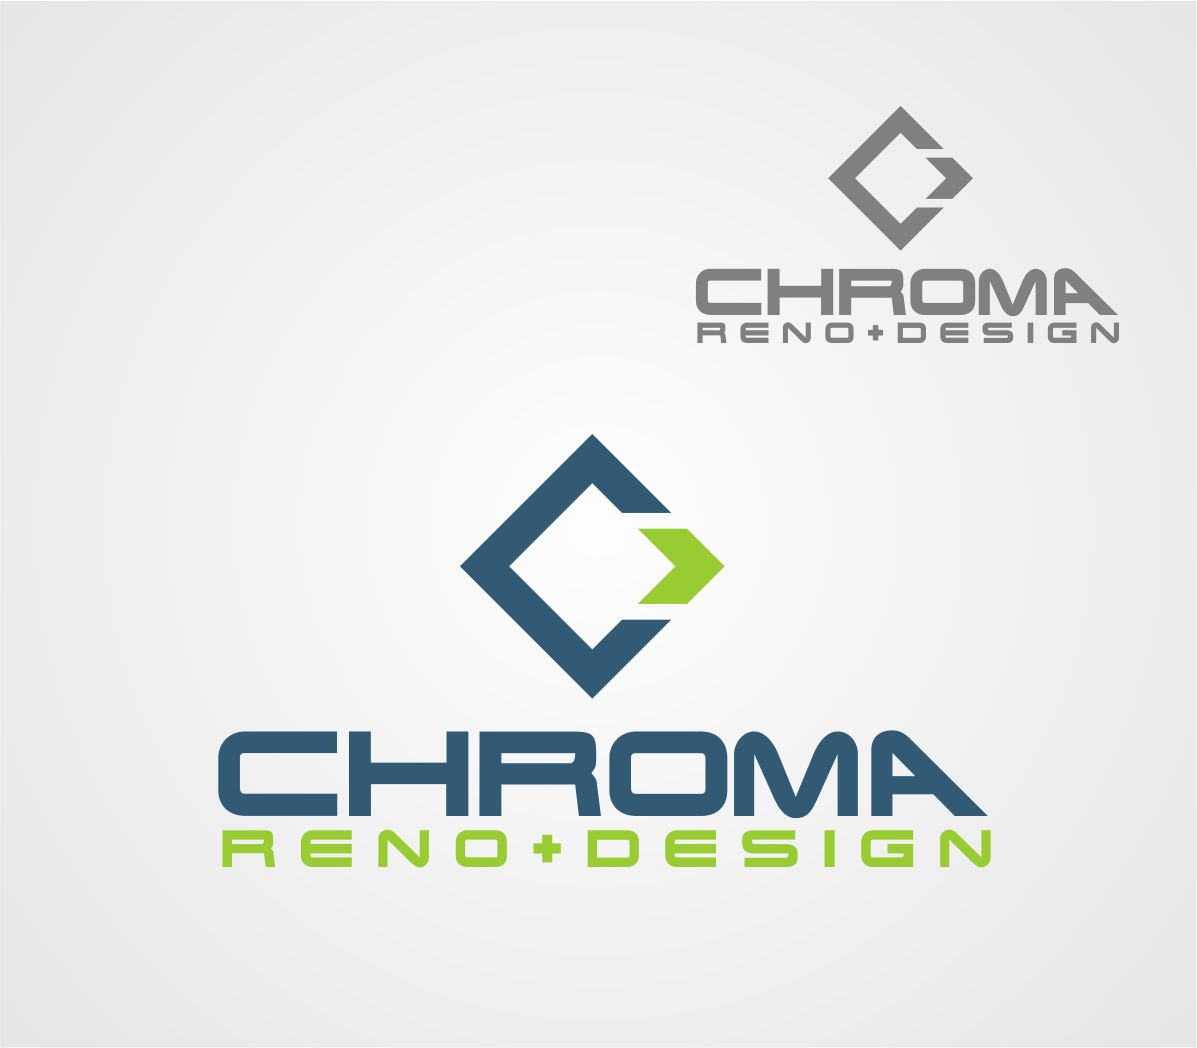 Logo Design by Reivan Ferdinan - Entry No. 296 in the Logo Design Contest Inspiring Logo Design for Chroma Reno+Design.